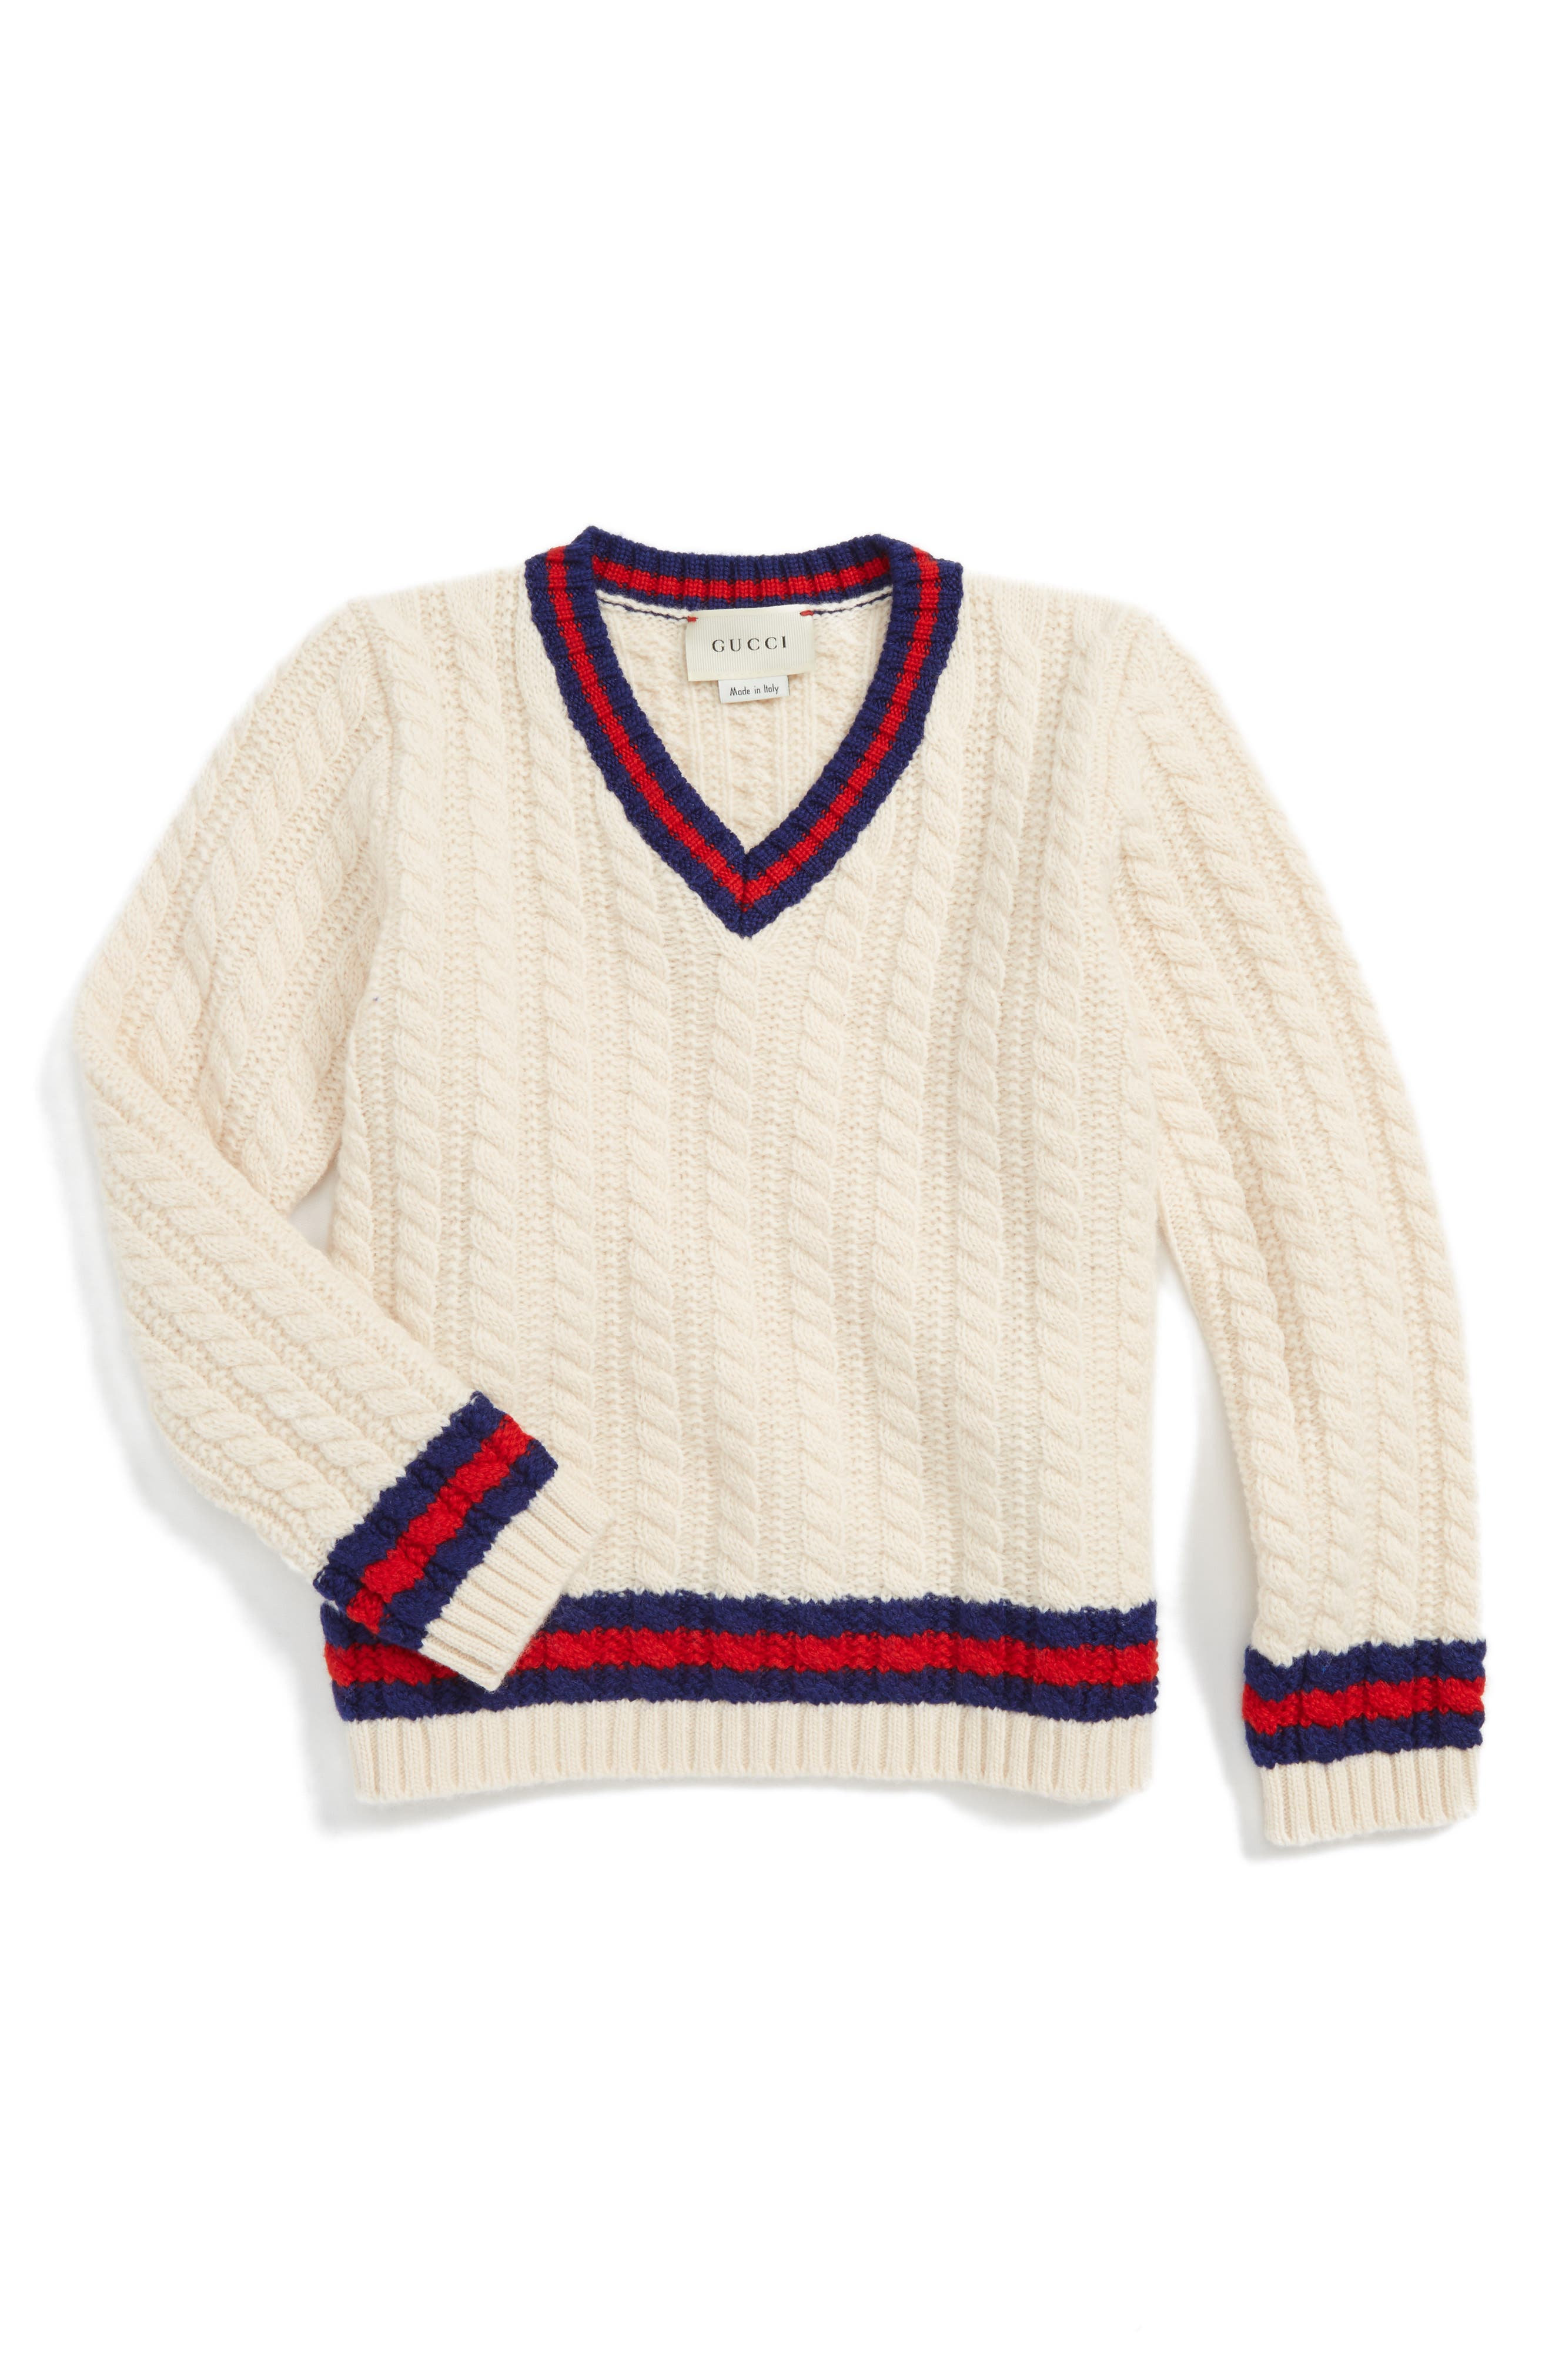 Gucci Cable Knit Wool Sweater (Baby)